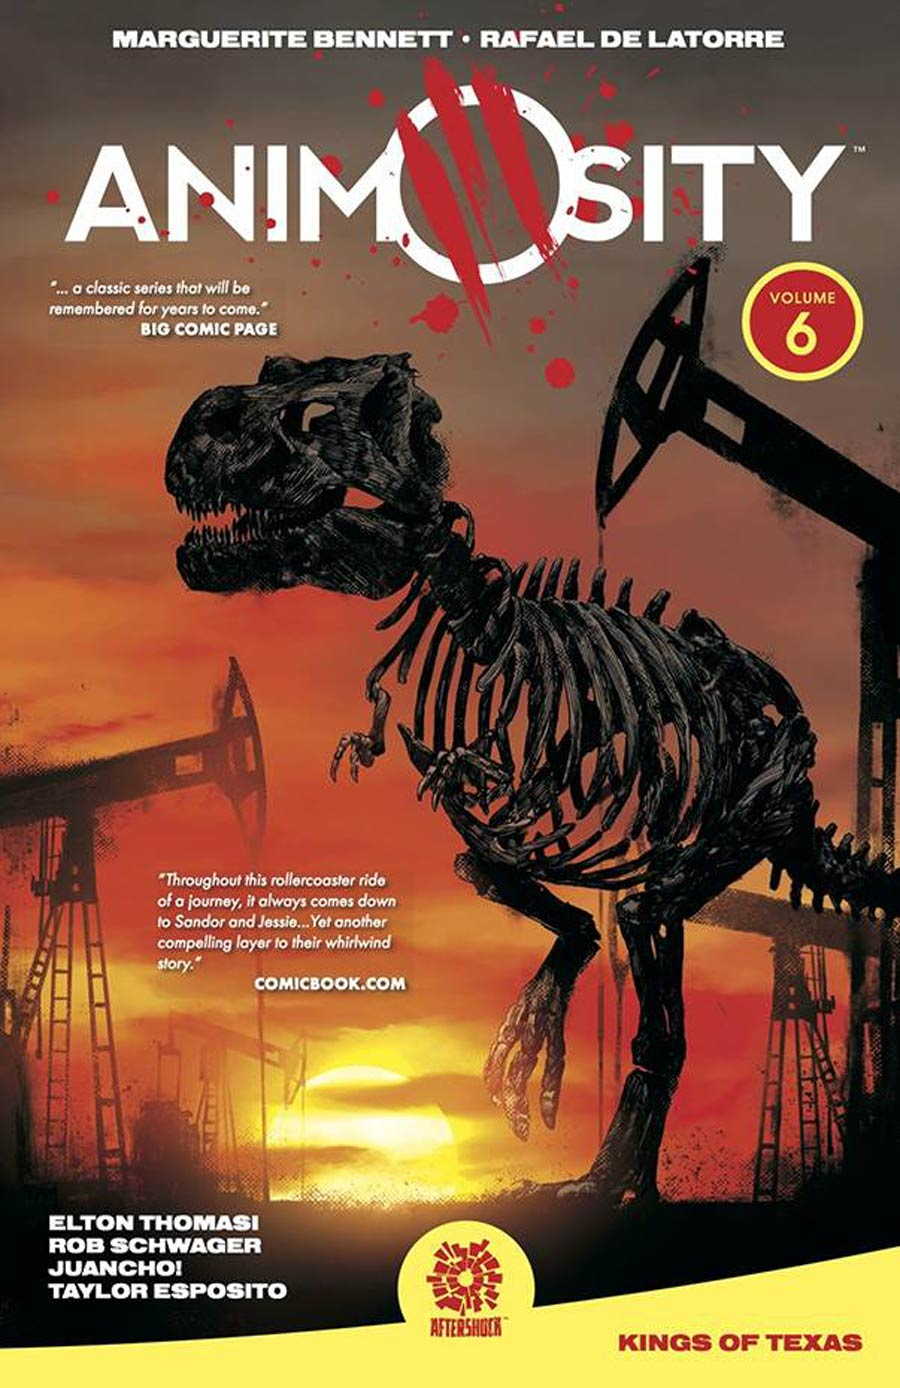 Animosity Vol 6 The King Of Texas TP